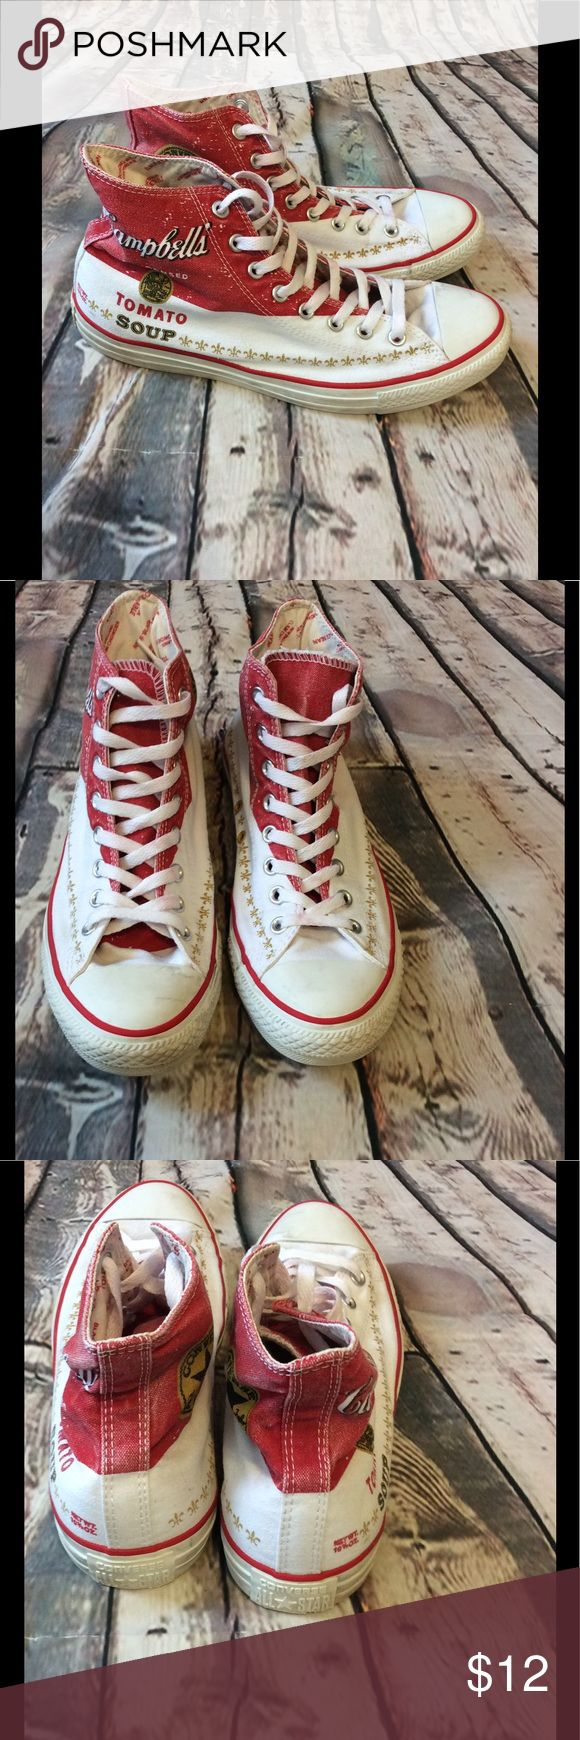 Andy Warhol converse size 9 1/2 (men) Andy Warhol converse size 9 1/2 (men) Campbell Soup Company edition -happy to answer questions Converse Shoes Sneakers